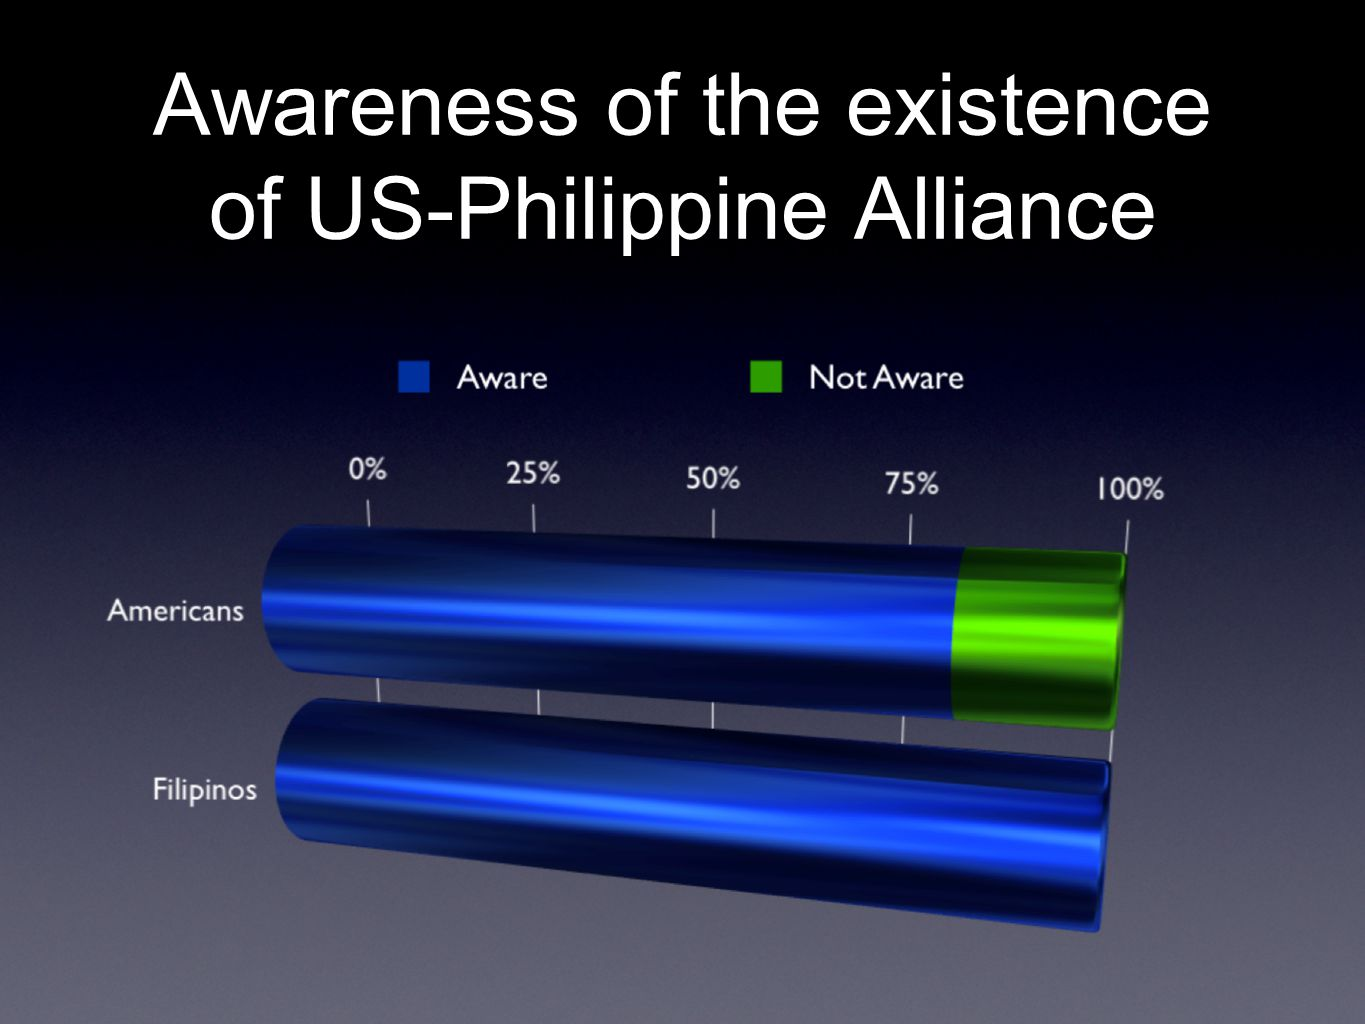 Awareness of the existence of US-Philippine Alliance